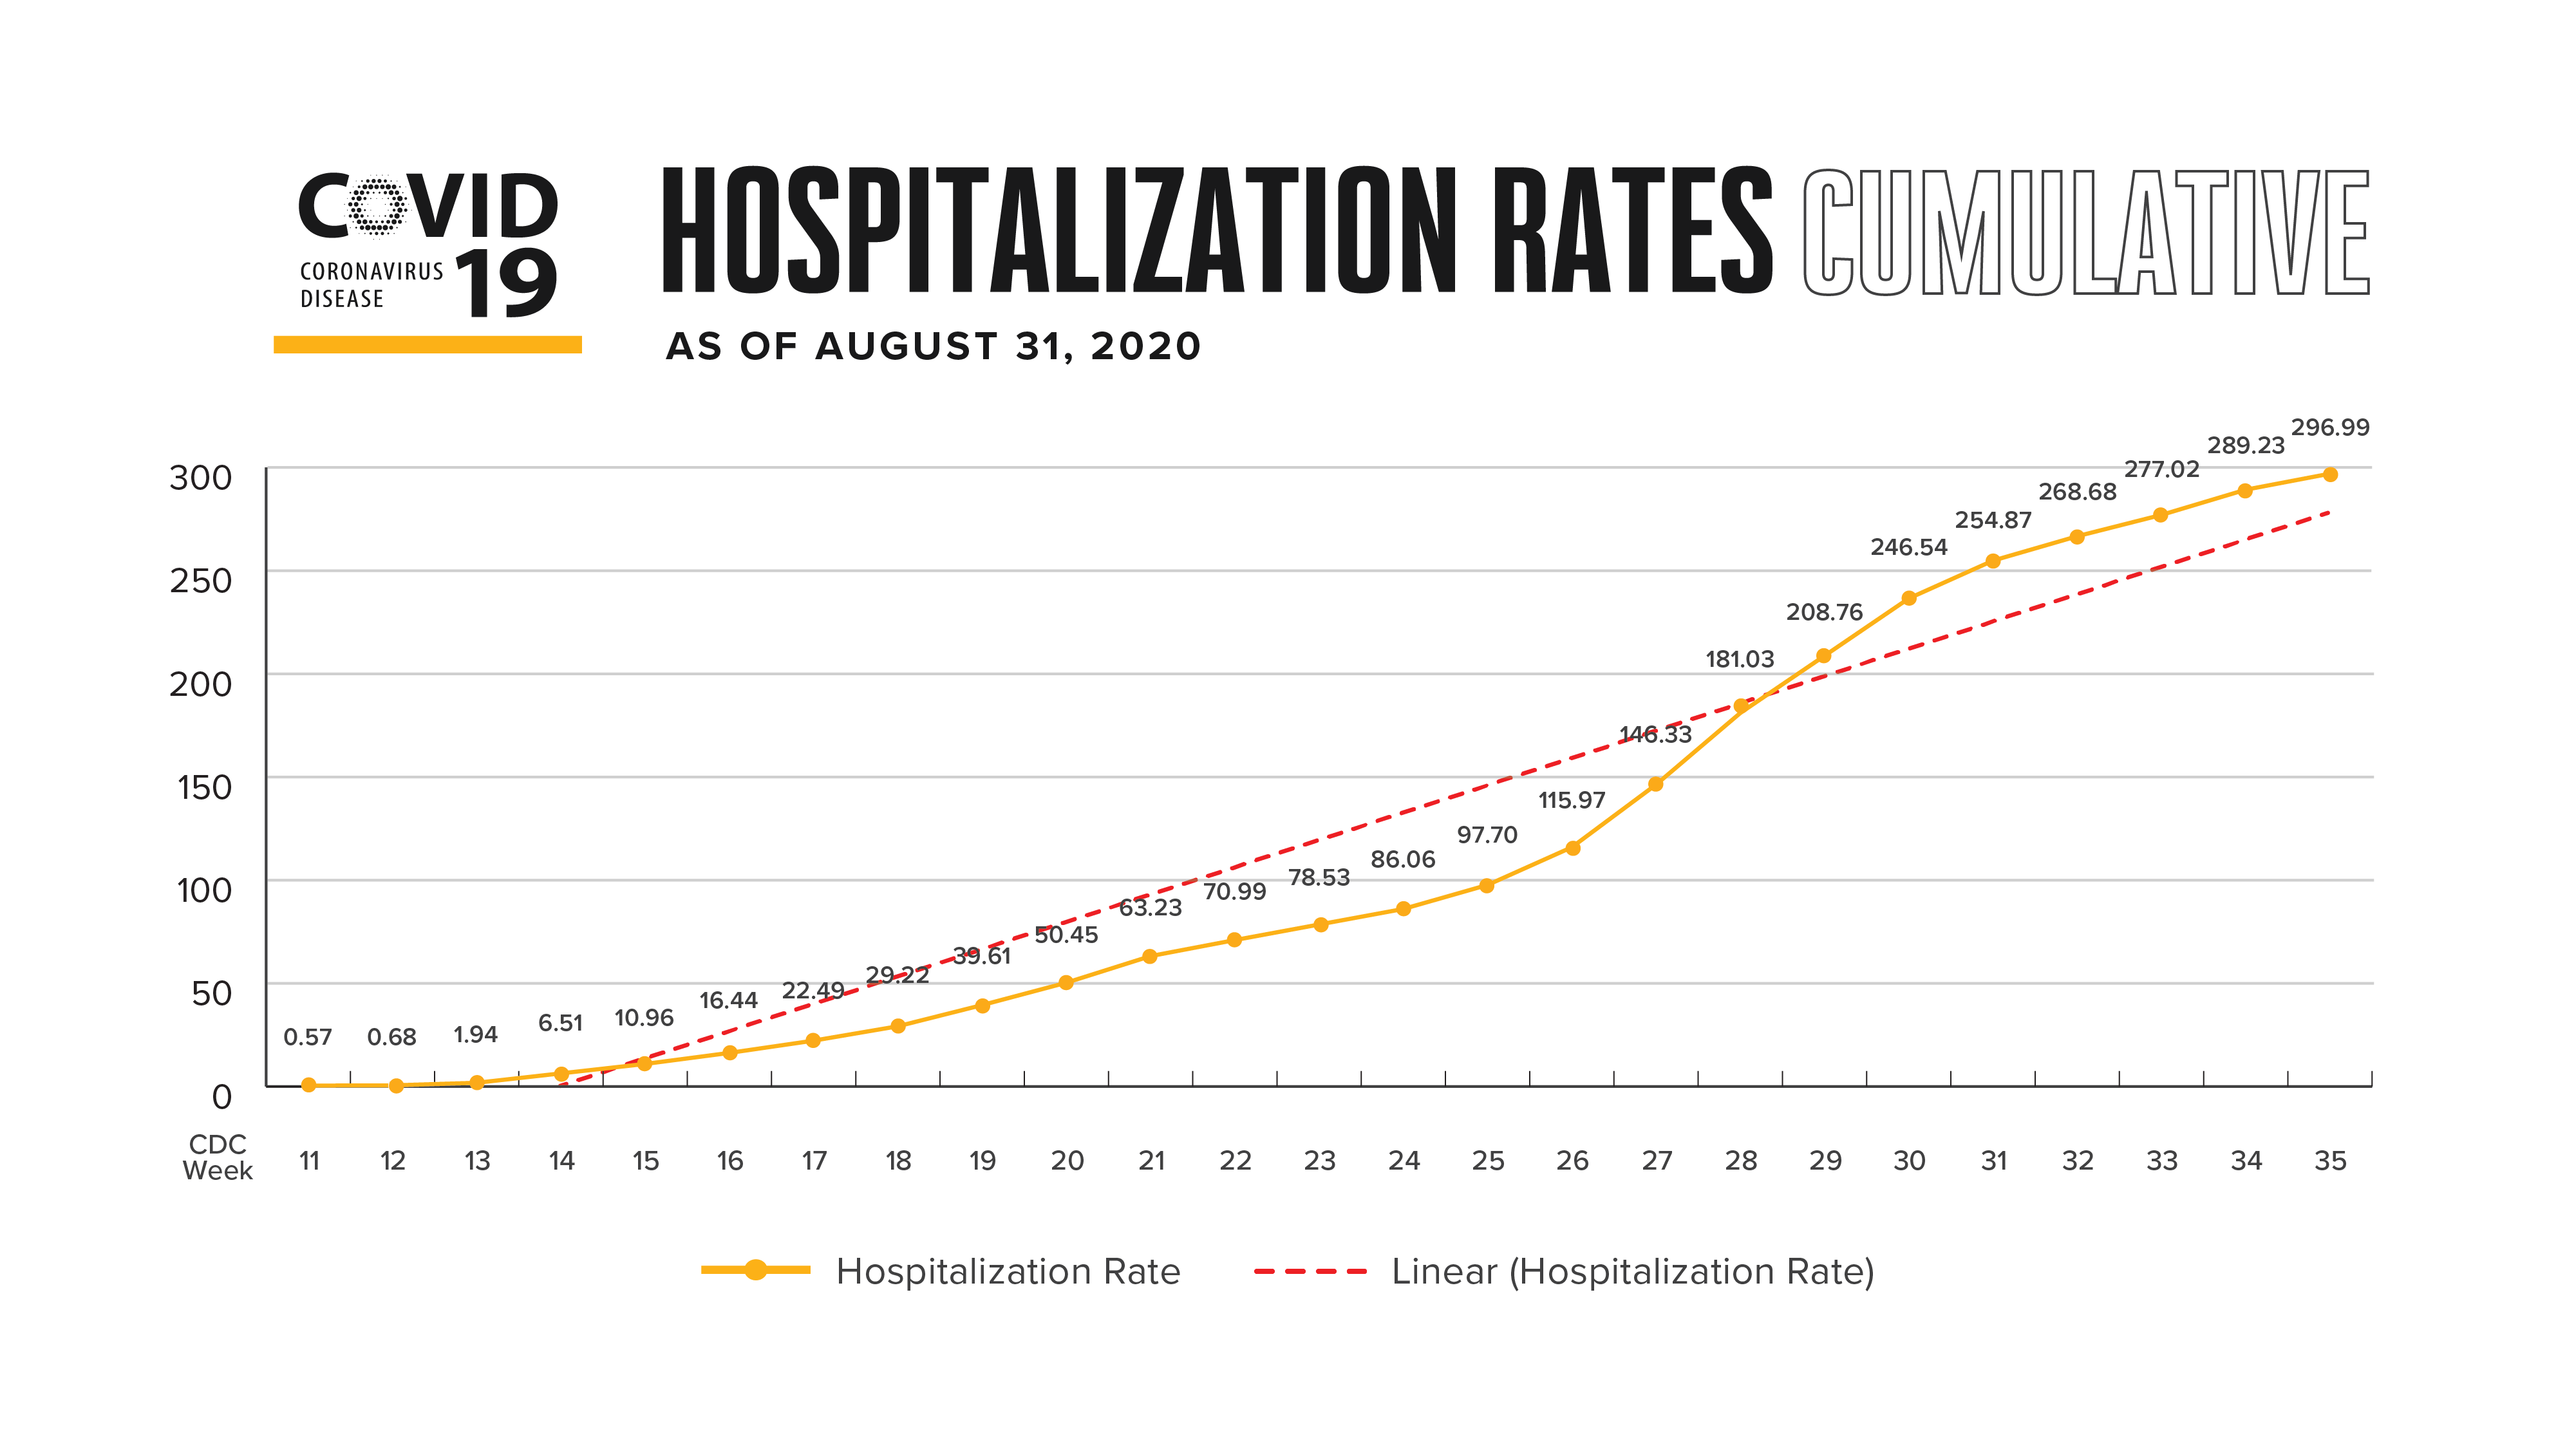 hospitalization rates cumulative